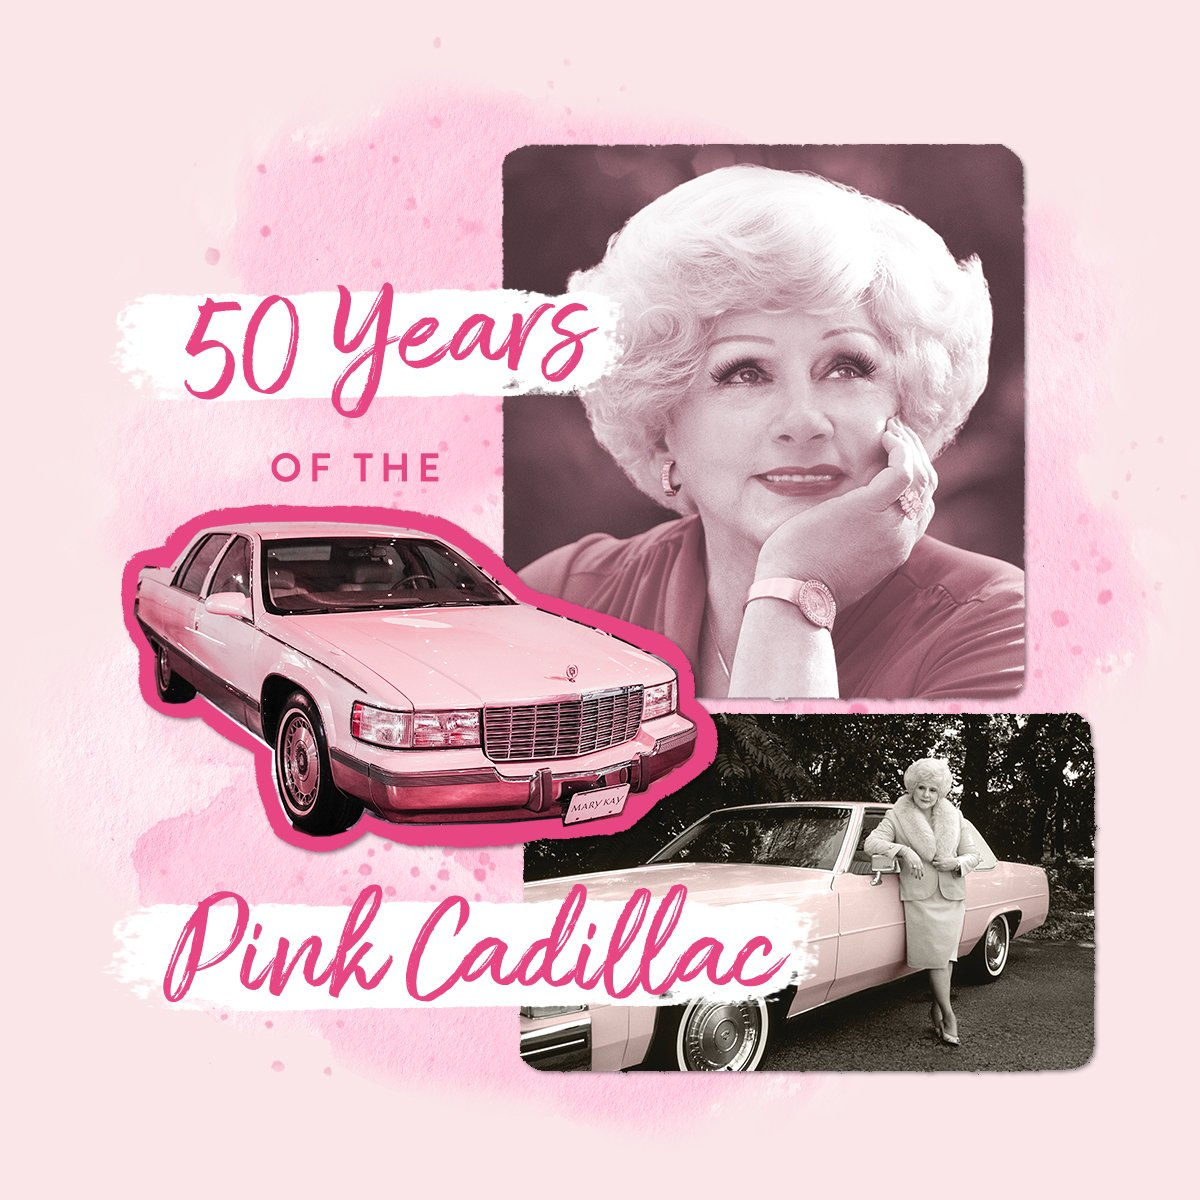 Mary Kay Inc On Twitter Celebrating 50 Years Of The Fabulous Pink Cadillac Drop A If You Love This Classic Car Marykay Https T Co Zwxdnkxrsr Https T Co Gvx2uou5x2